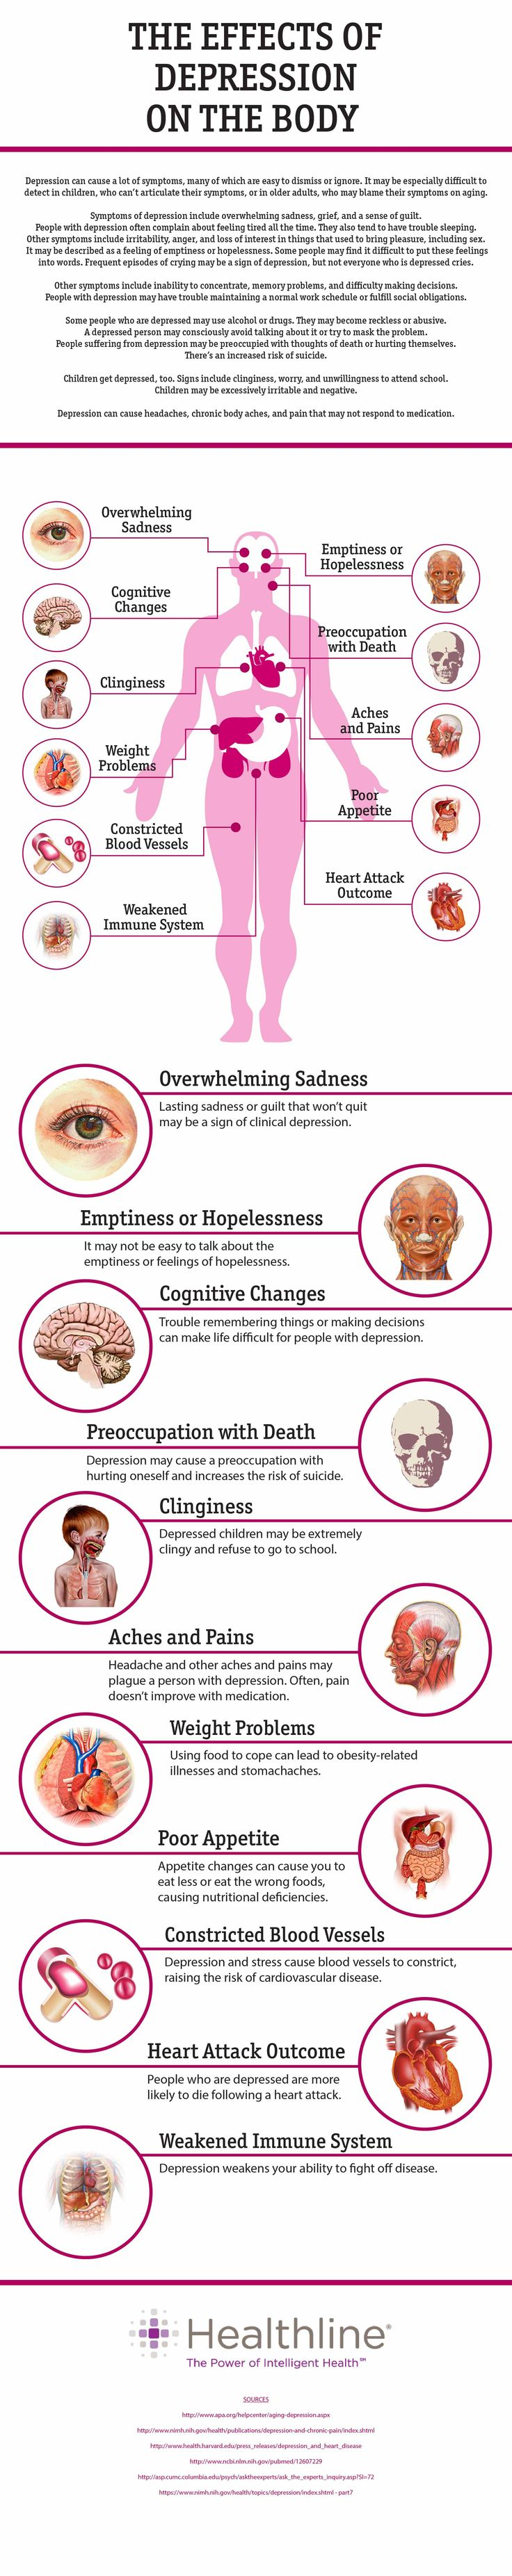 The Effects of Depression on the Body